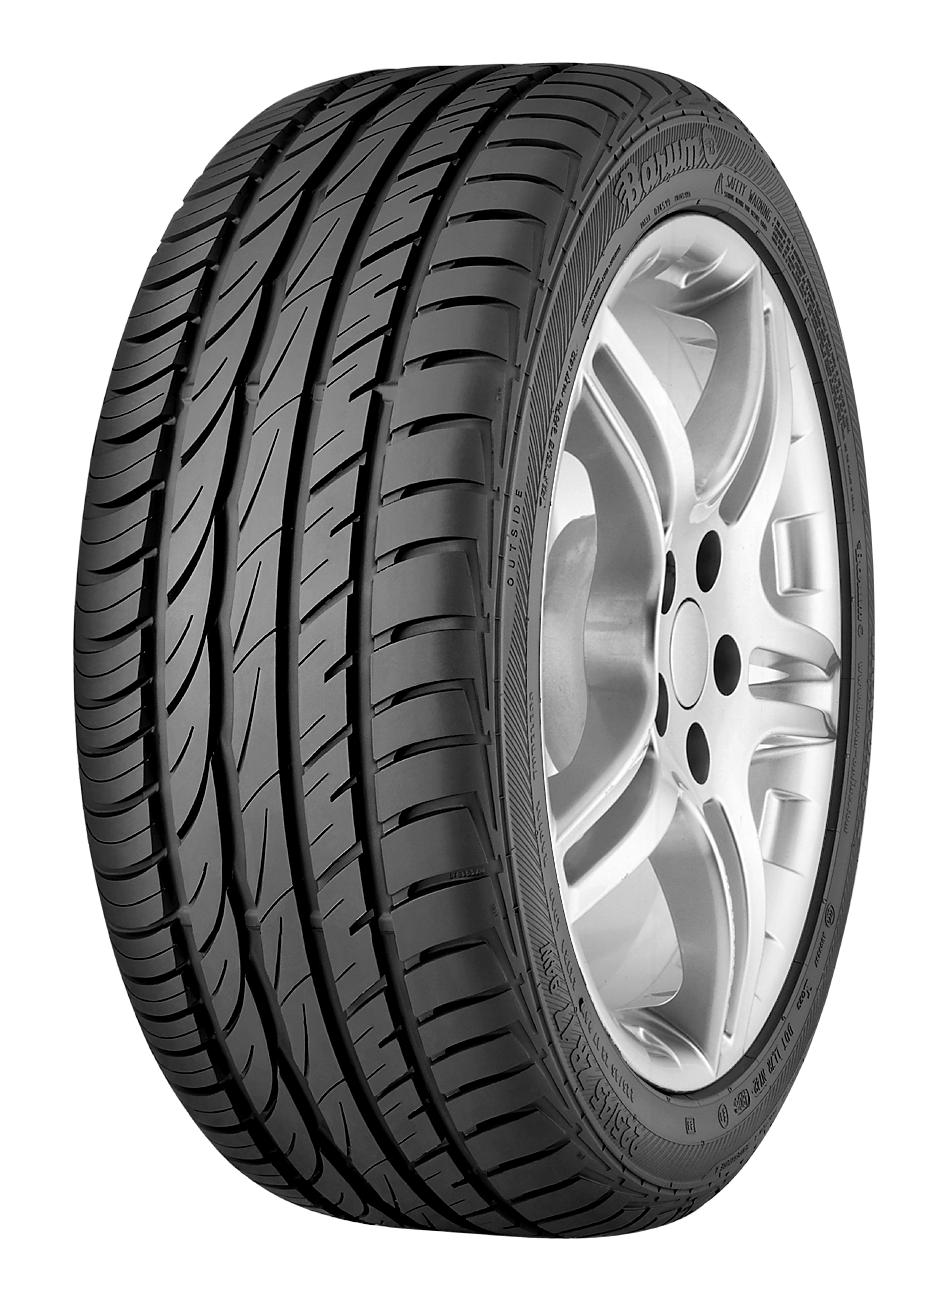 215/60 R16 [99] H BRAVURIS 2 XL - BARUM